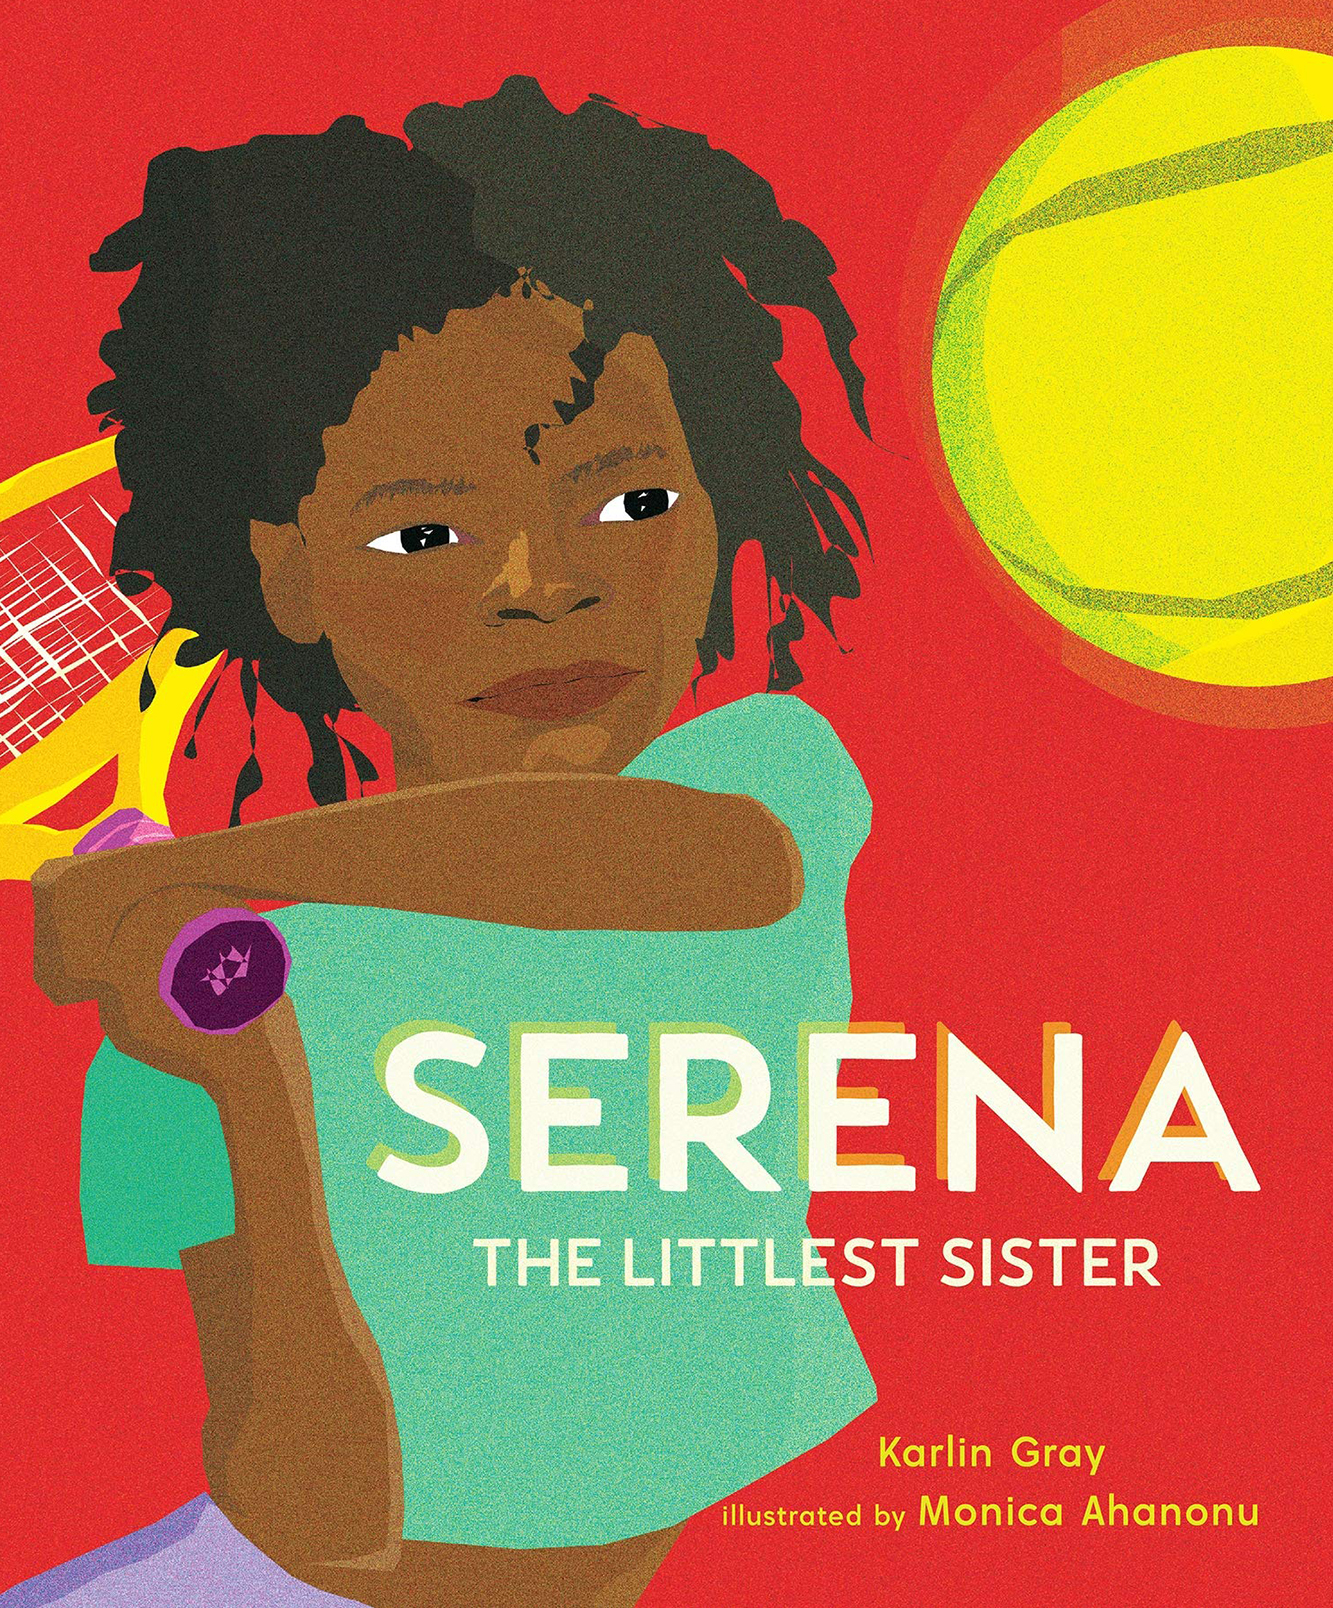 Serena: The Littlest Sister by Karlin Gray